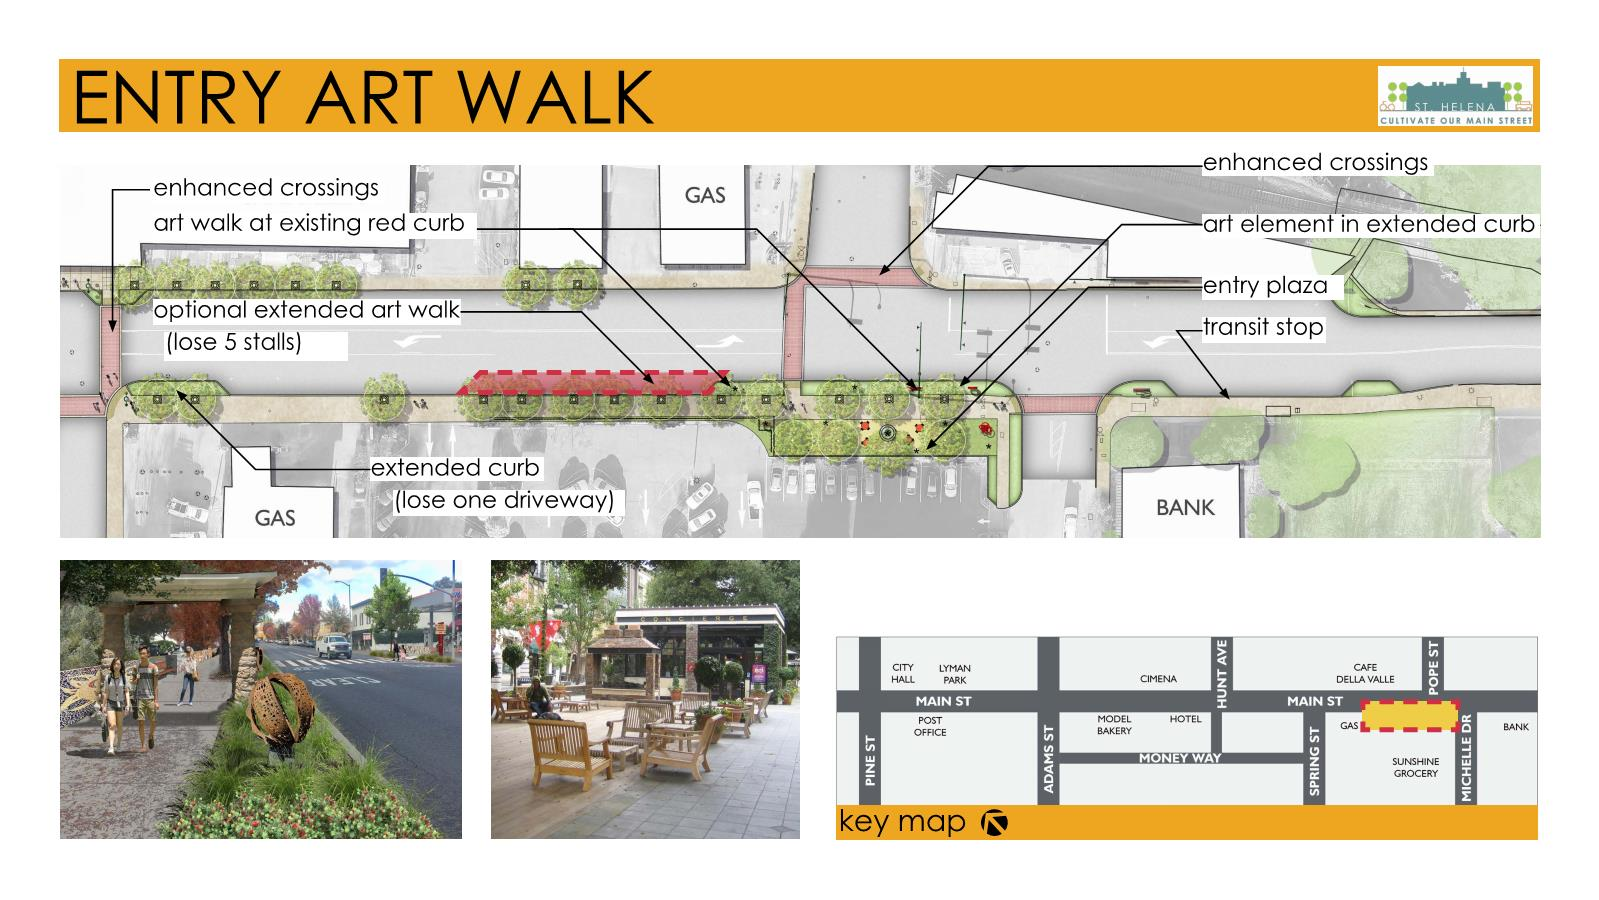 We have the opportunity to create an Entry to Main Street with an art walk and plaza area at the intersection of Main Street and Pope Street. The curb is shifted out into non-parking areas to add landscape and art elements. We can also use the existing landscape area at this corner to create a plaza without changing existing parking conditions.